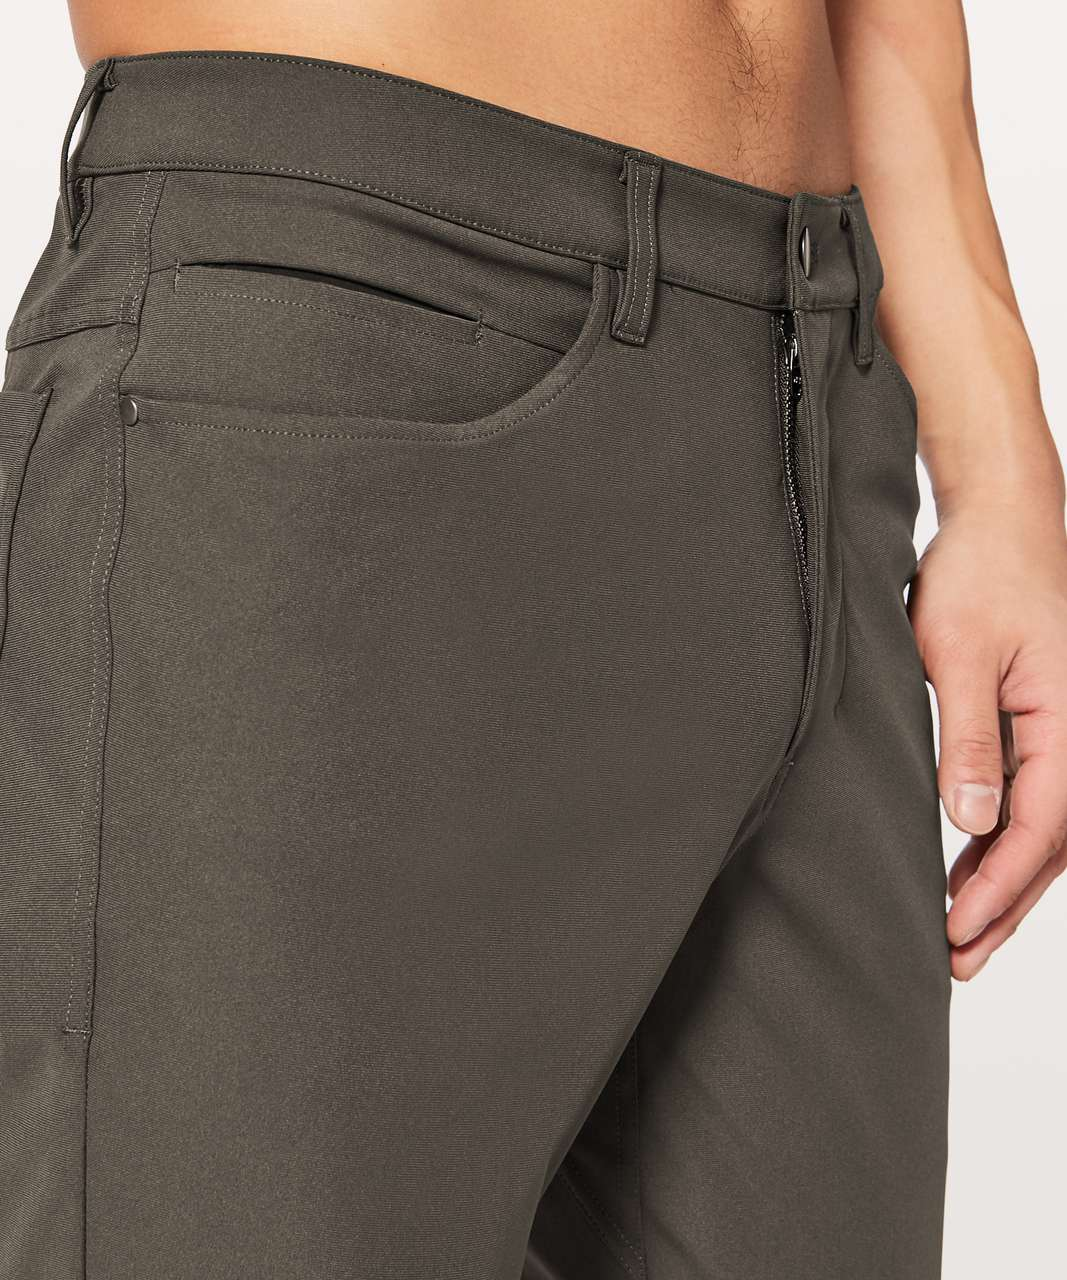 "Lululemon ABC Pant Classic *34"" - Stoney"